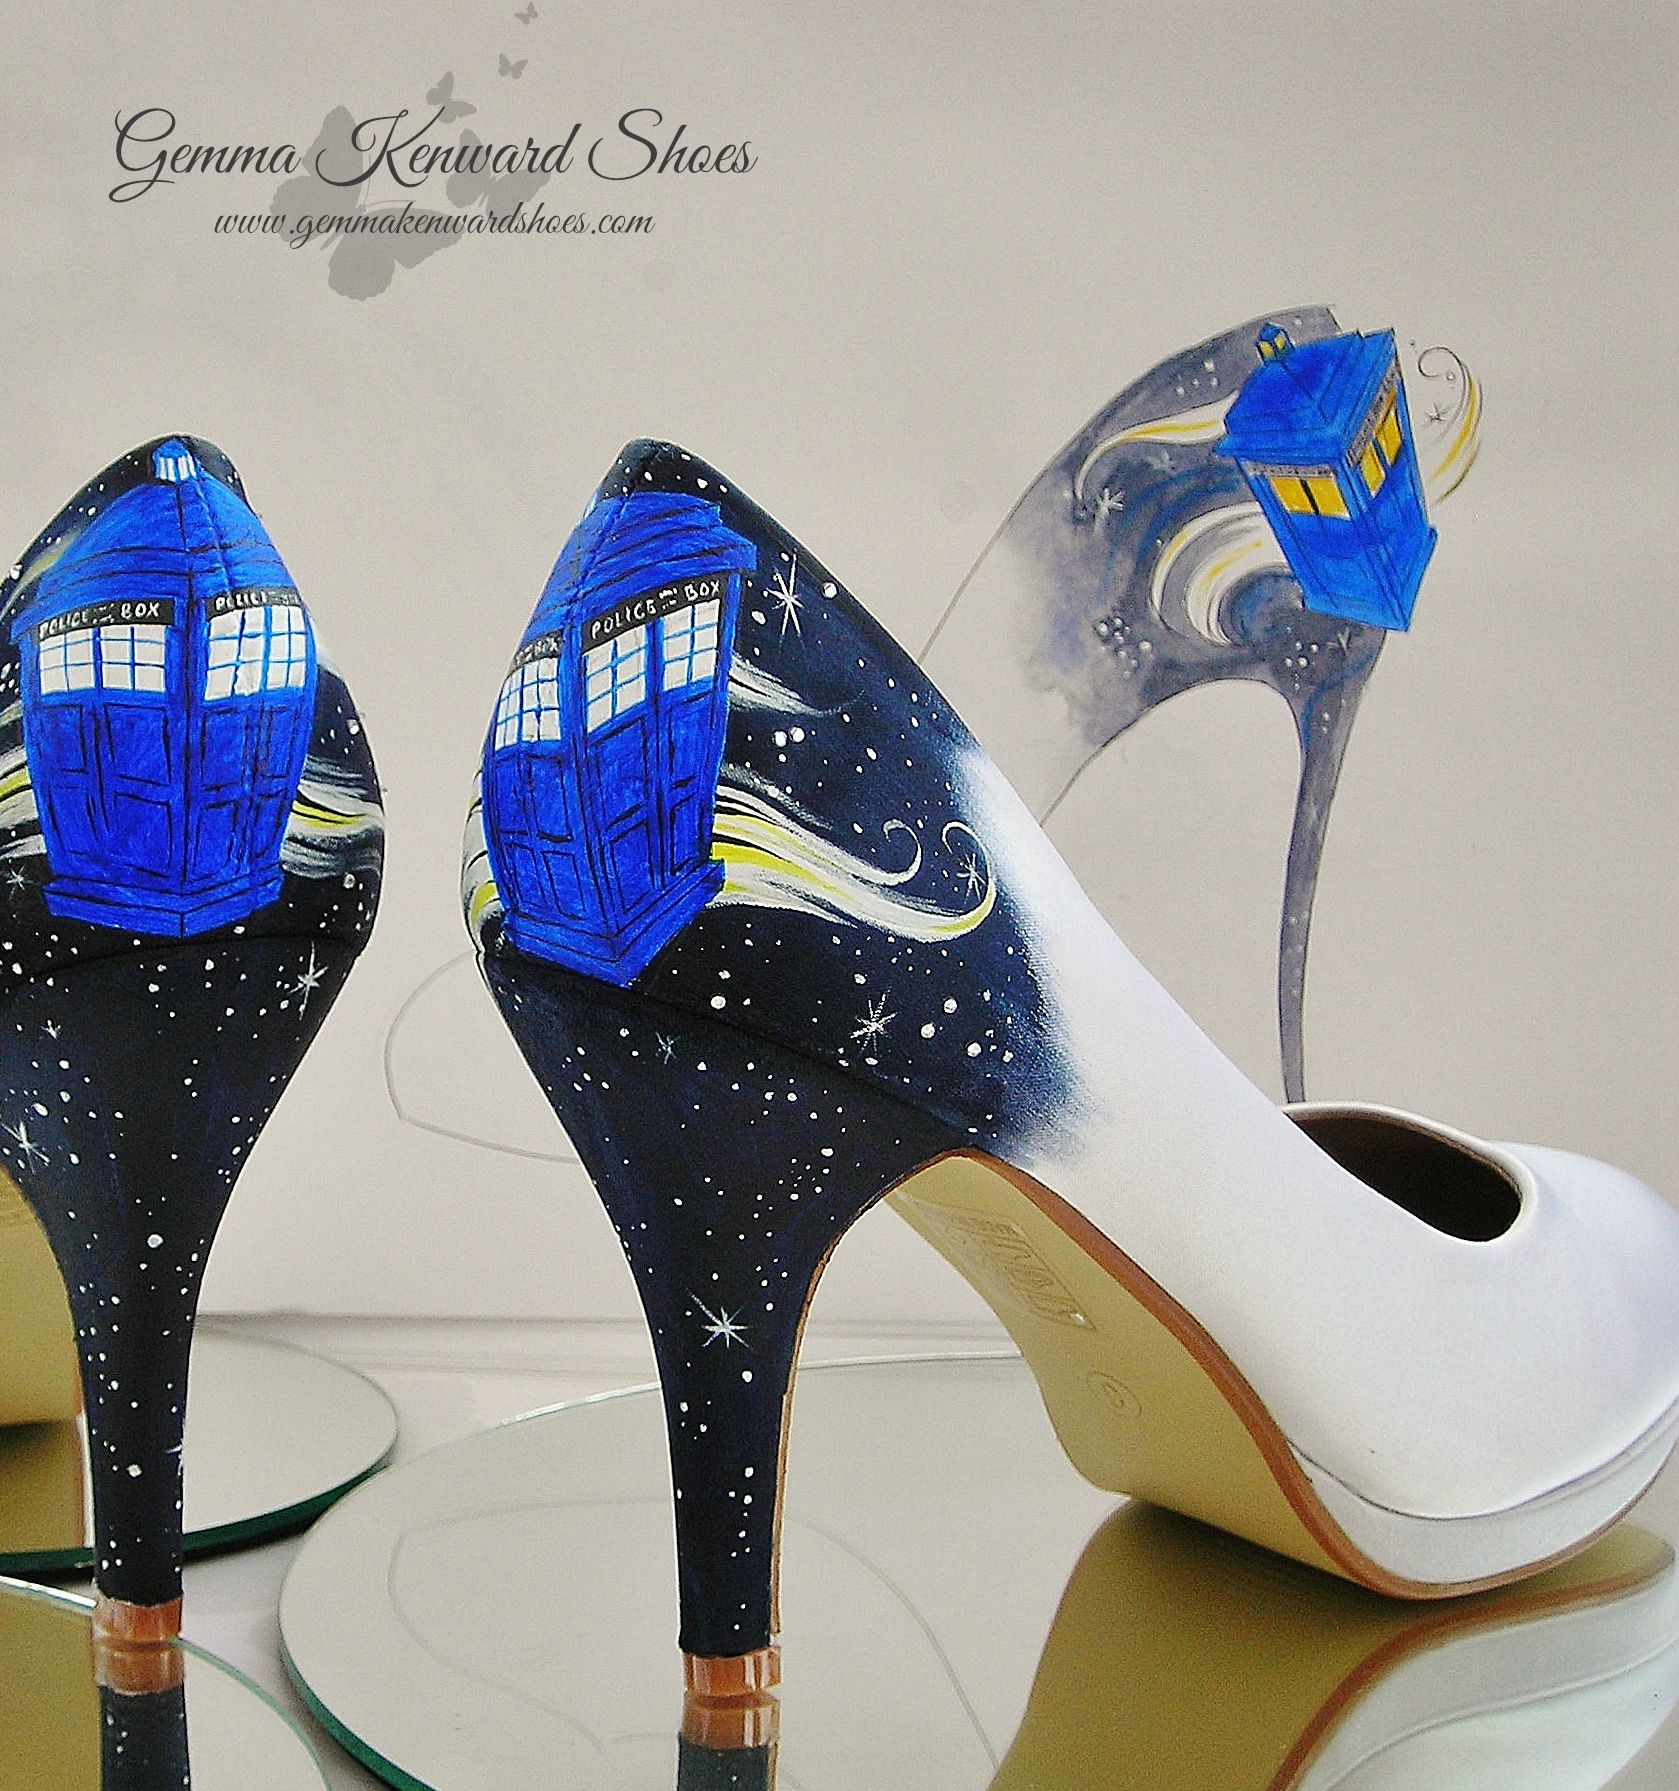 Doctor Who Tardis Shoes with the orginal draft of the brides wedding shoes in the background